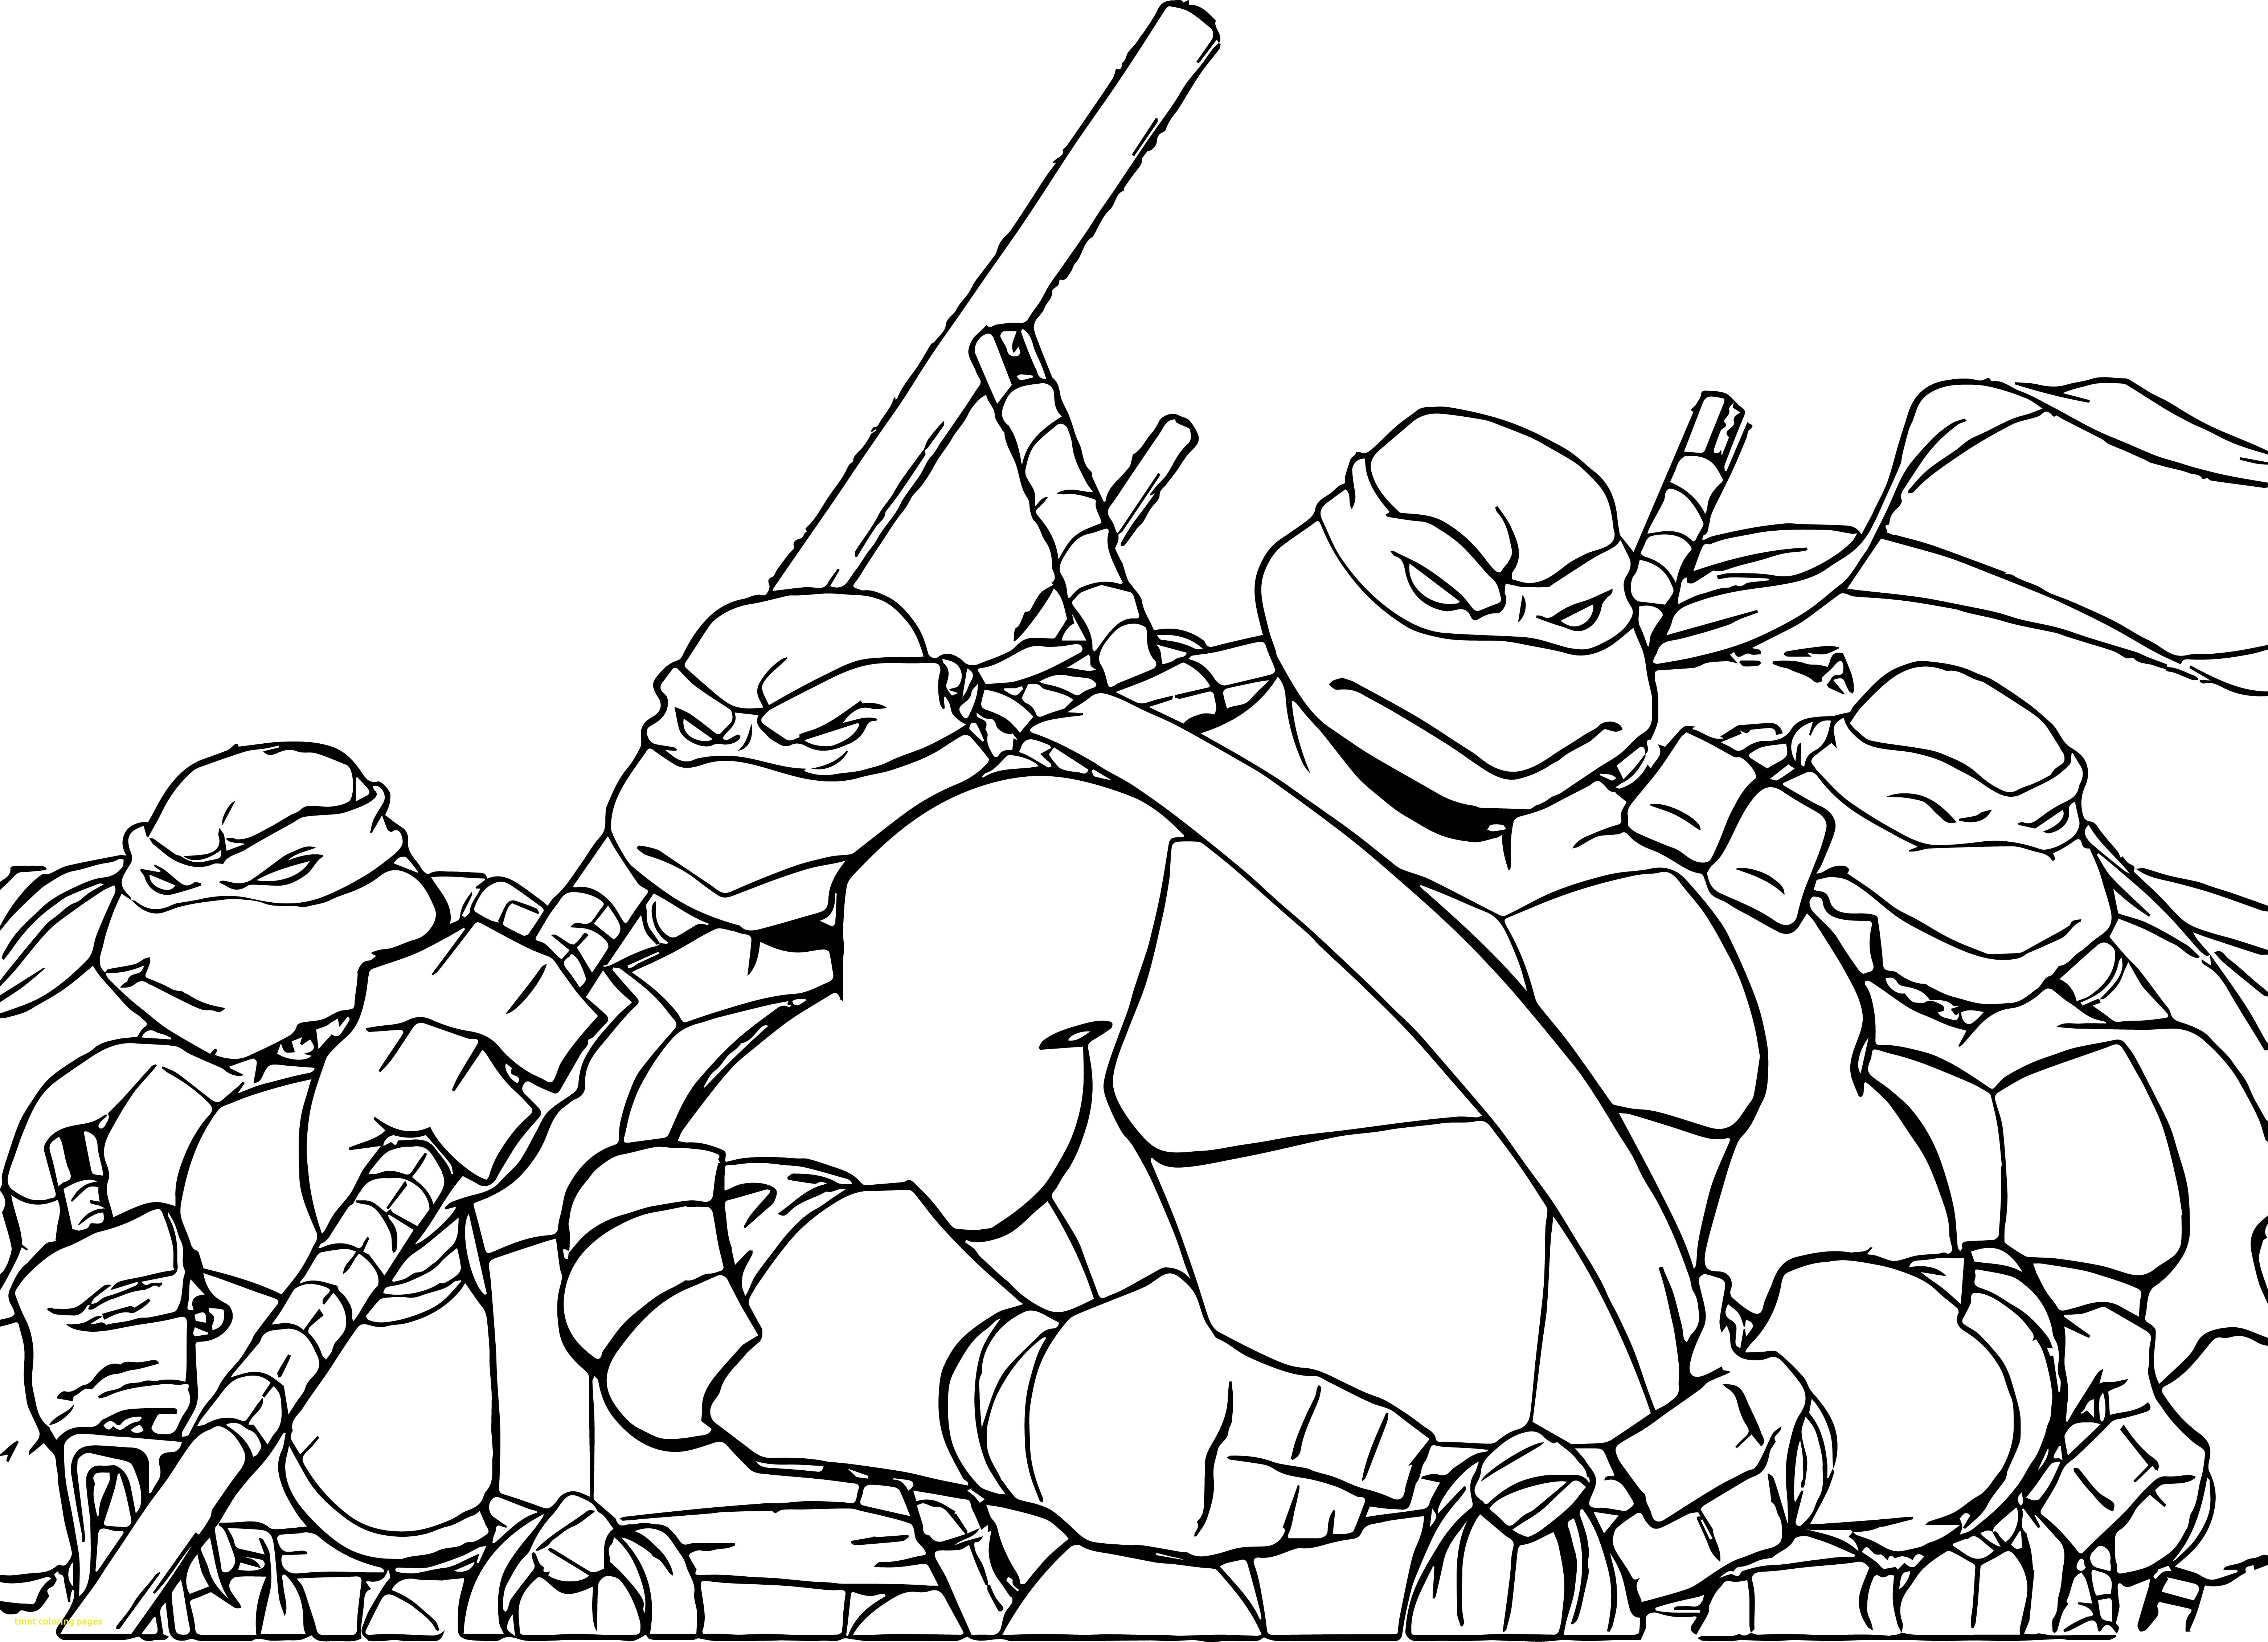 6250x4524 Tmnt Coloring Pages With Tmnt Free Coloring Pages Ninja Turtles